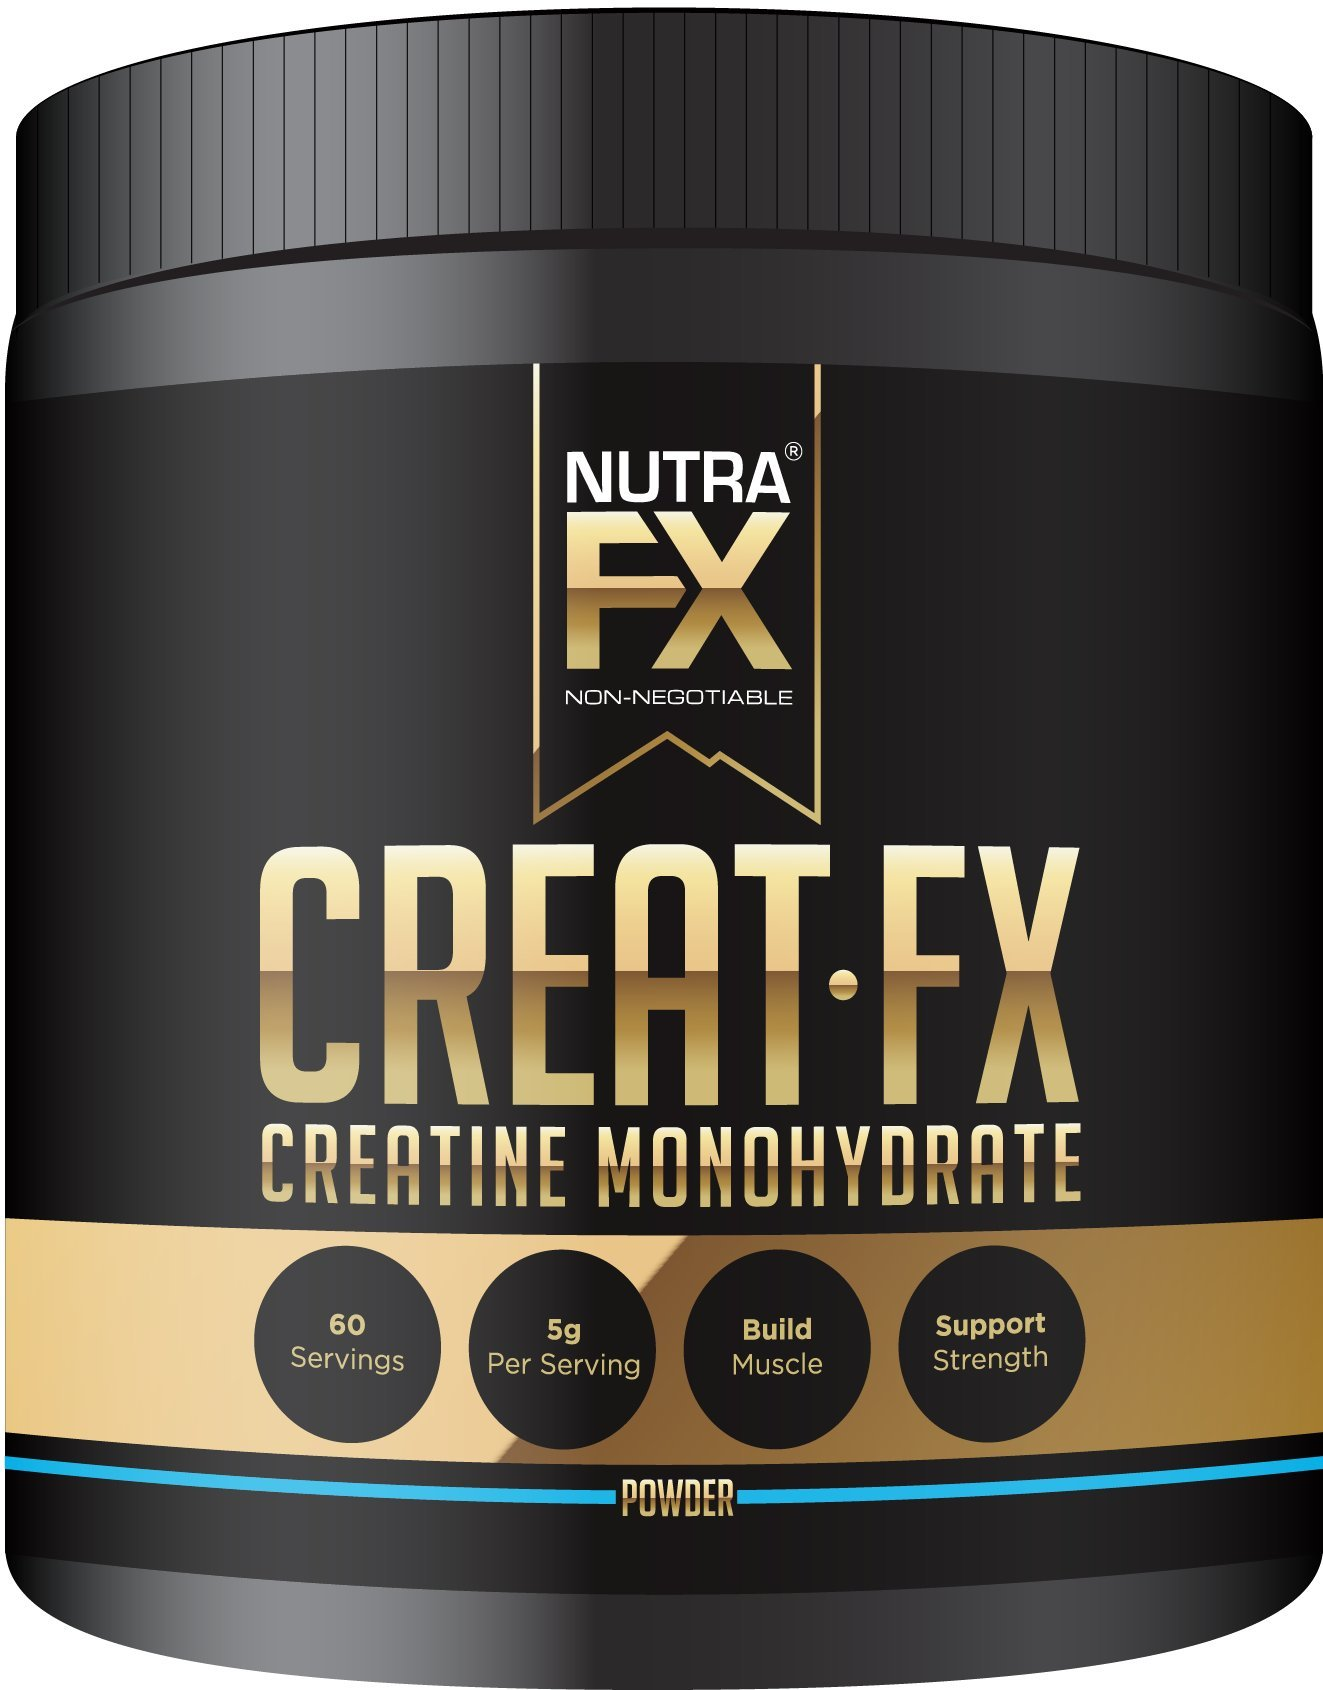 Cheap Micronized Monohydrate Find Deals On Rsp Creatine 500 Gram Get Quotations Nutrafx Powder All Natural Pre Workout Energy Boost And Muscle Building Supplements